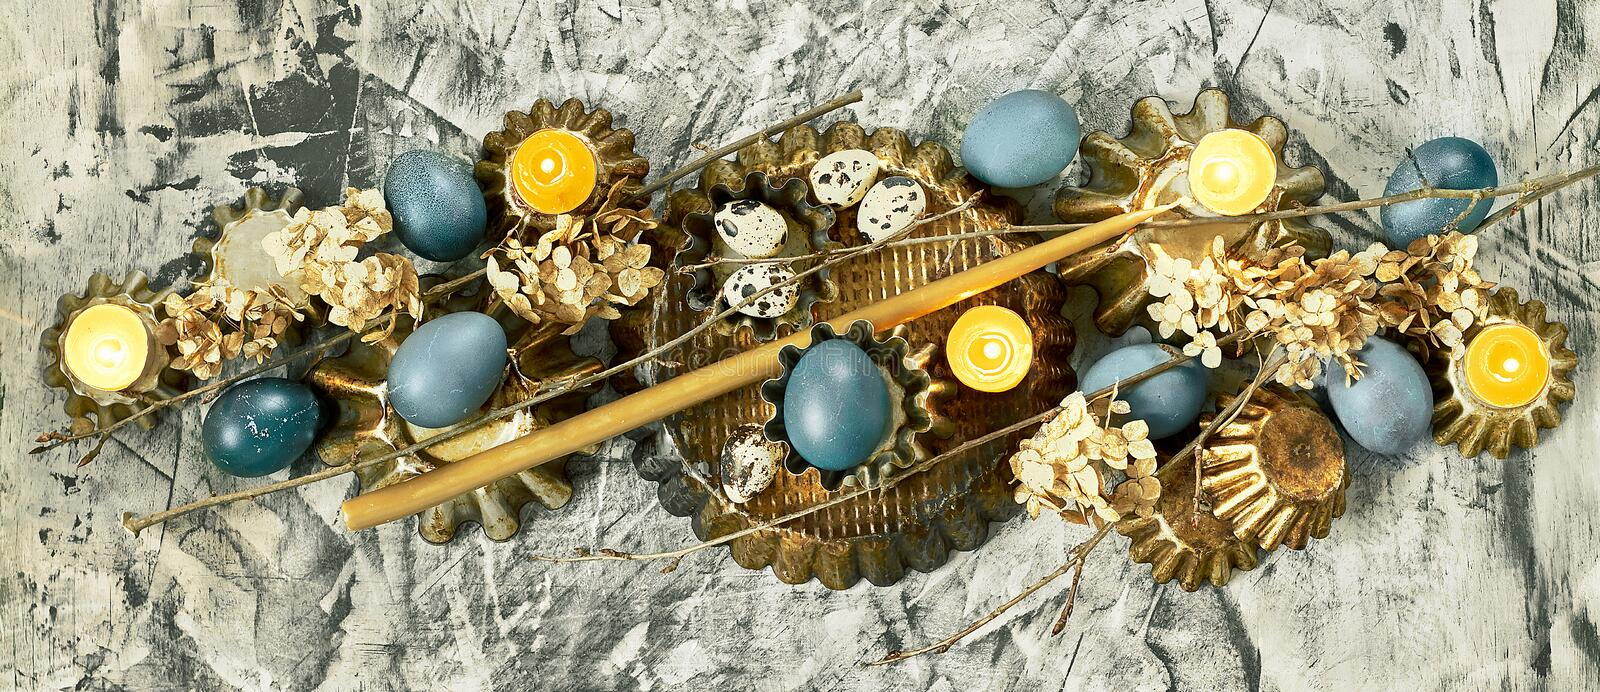 Easter banner: composition from blue eggs, cake forms, tree branches, dry flowers and candles on concrete background. Copy space, Christian religious festival stock images